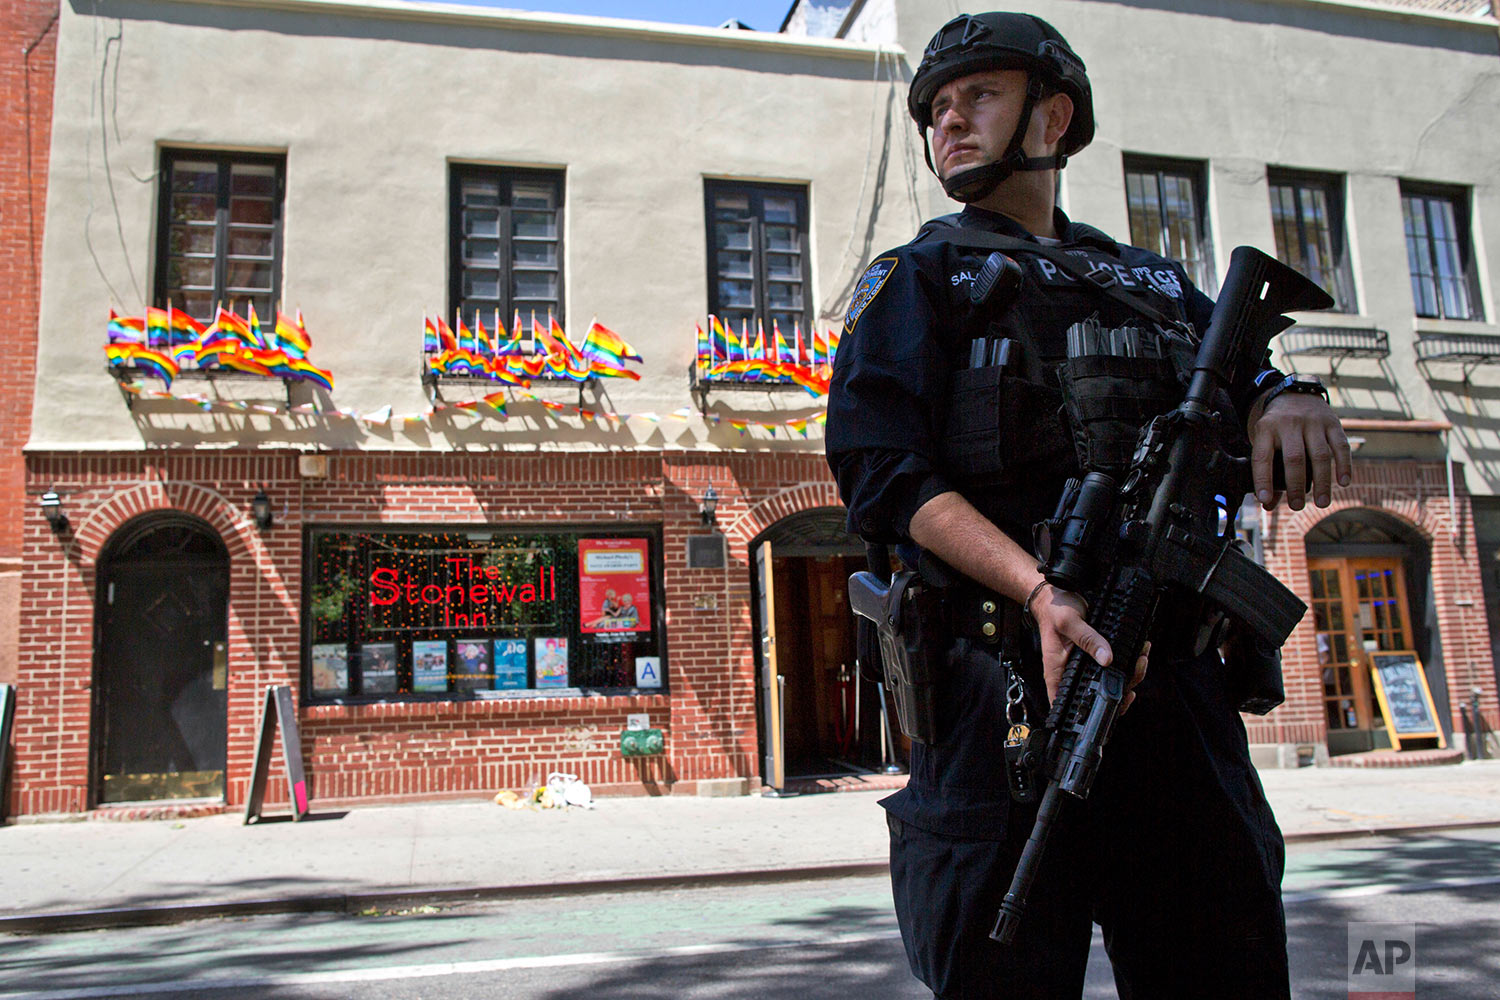 In this June 12, 2016 file photo, an armed police officer stands guard outside the Stonewall Inn in New York, after a gunman in Orlando, Fla., opened fire in a gay nightclub, spreading fear of more attacks. (AP Photo/Mary Altaffer)